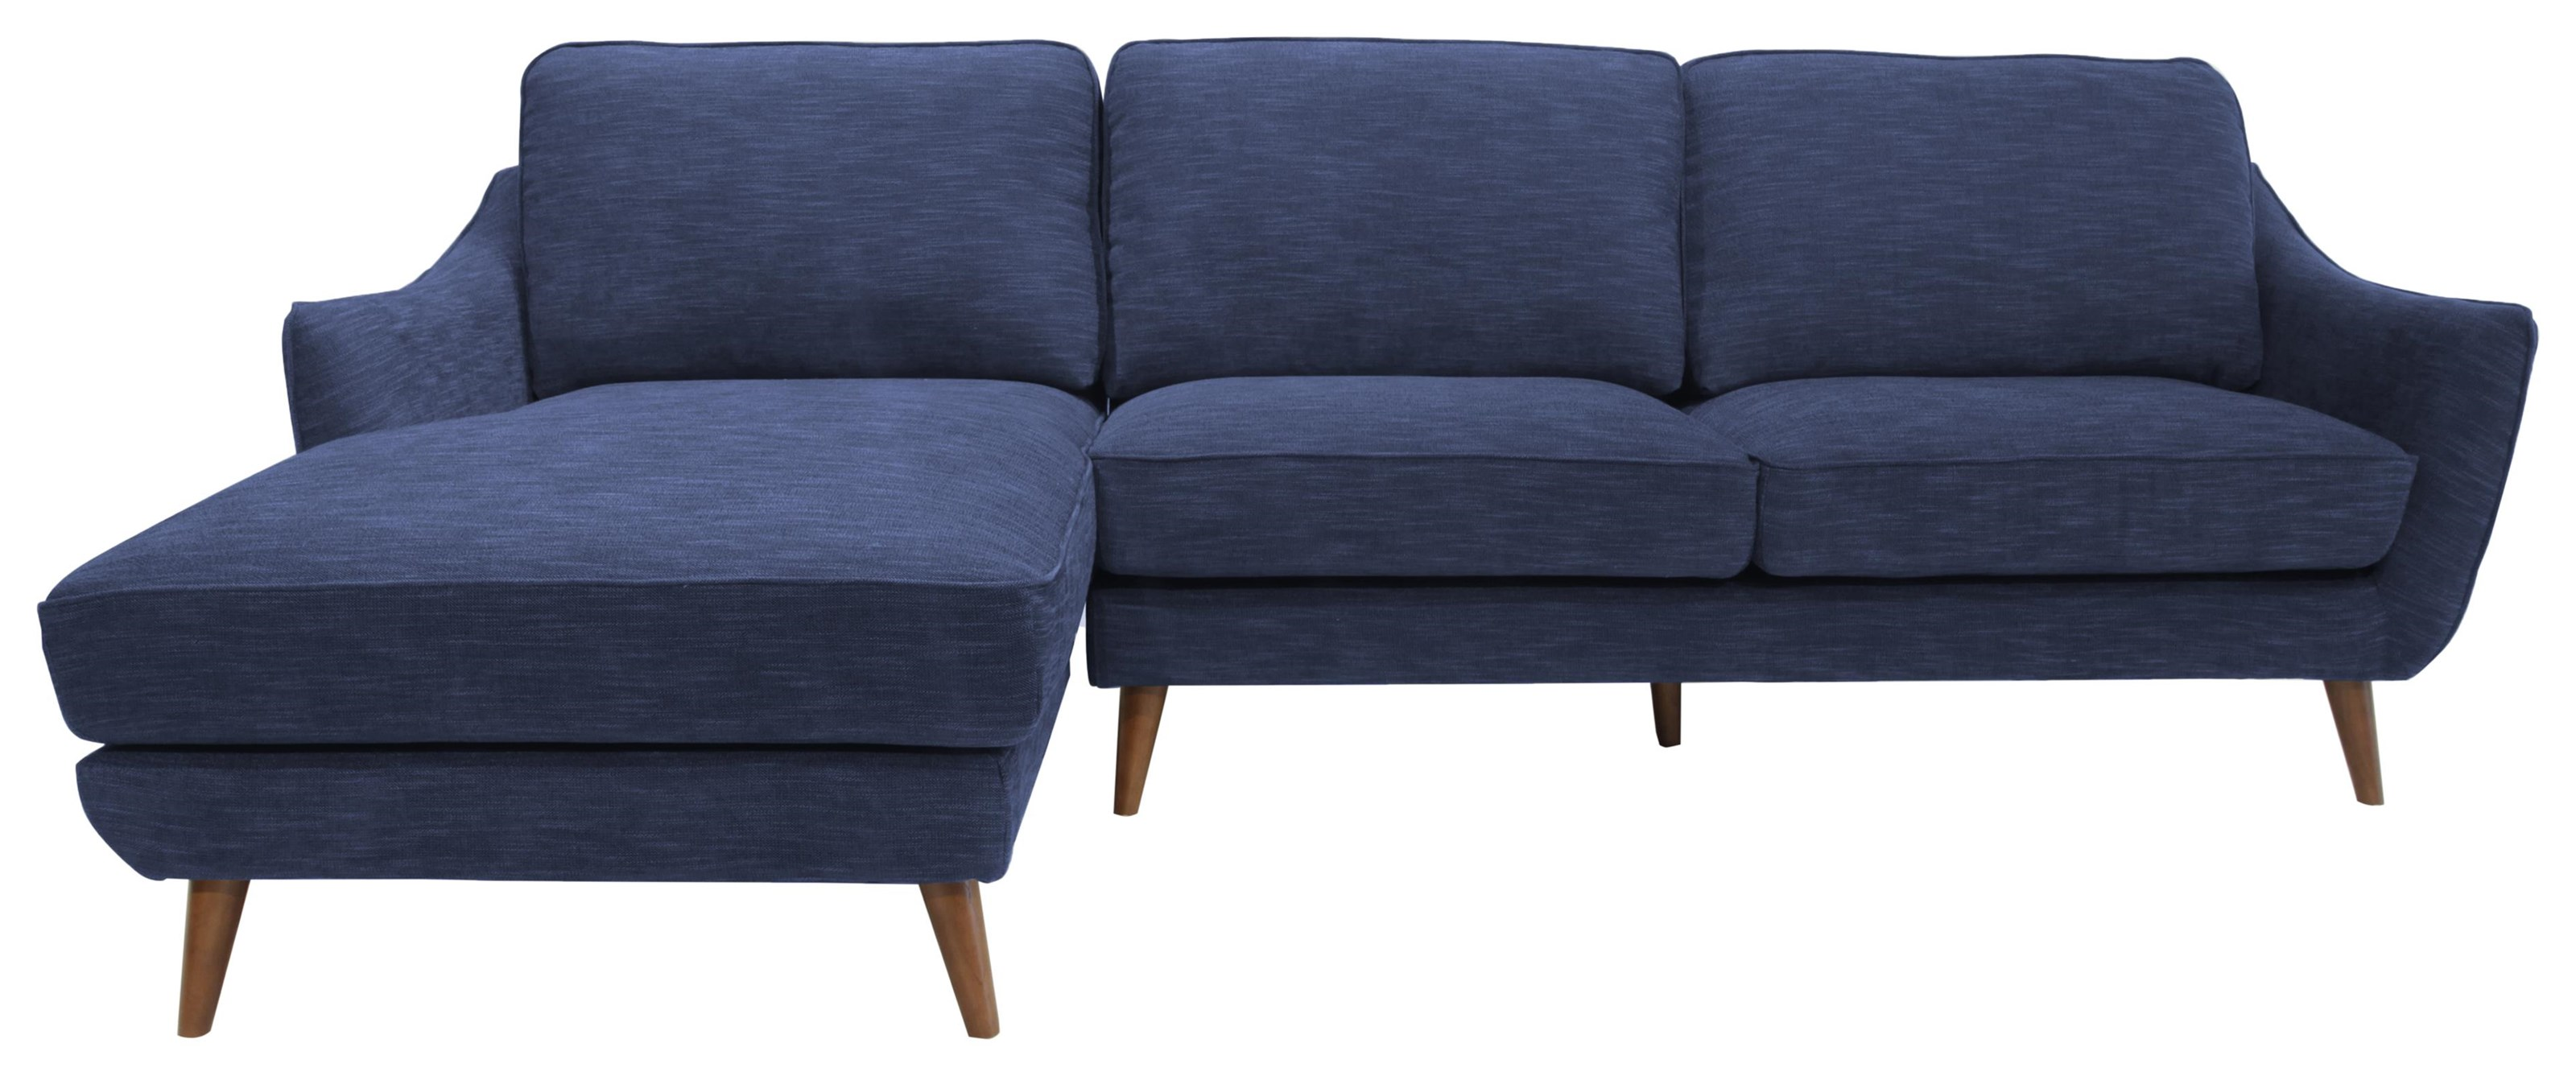 Olivia Sectional by Urban Chic at HomeWorld Furniture